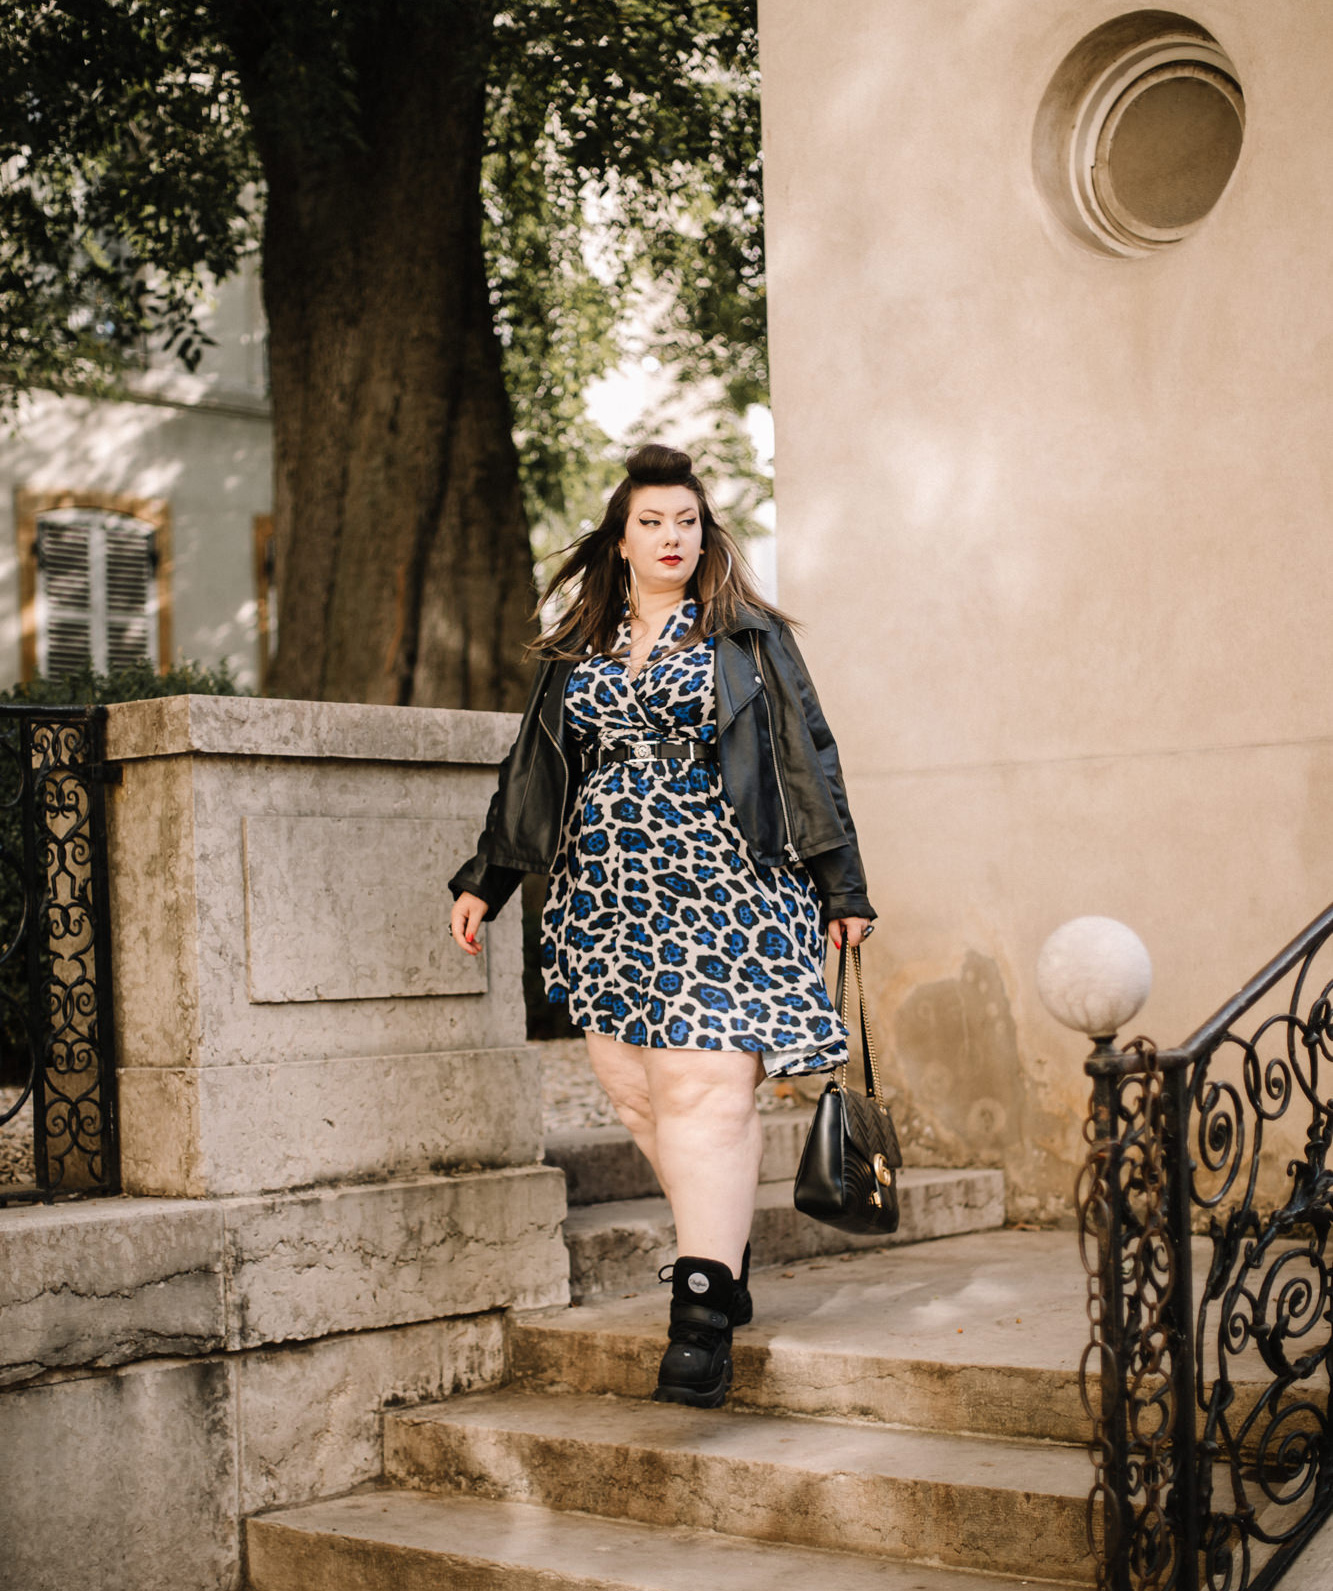 plus size blogger asos curve curvy girl blogger fashion lyon ronde grosse mode grande taille leopard